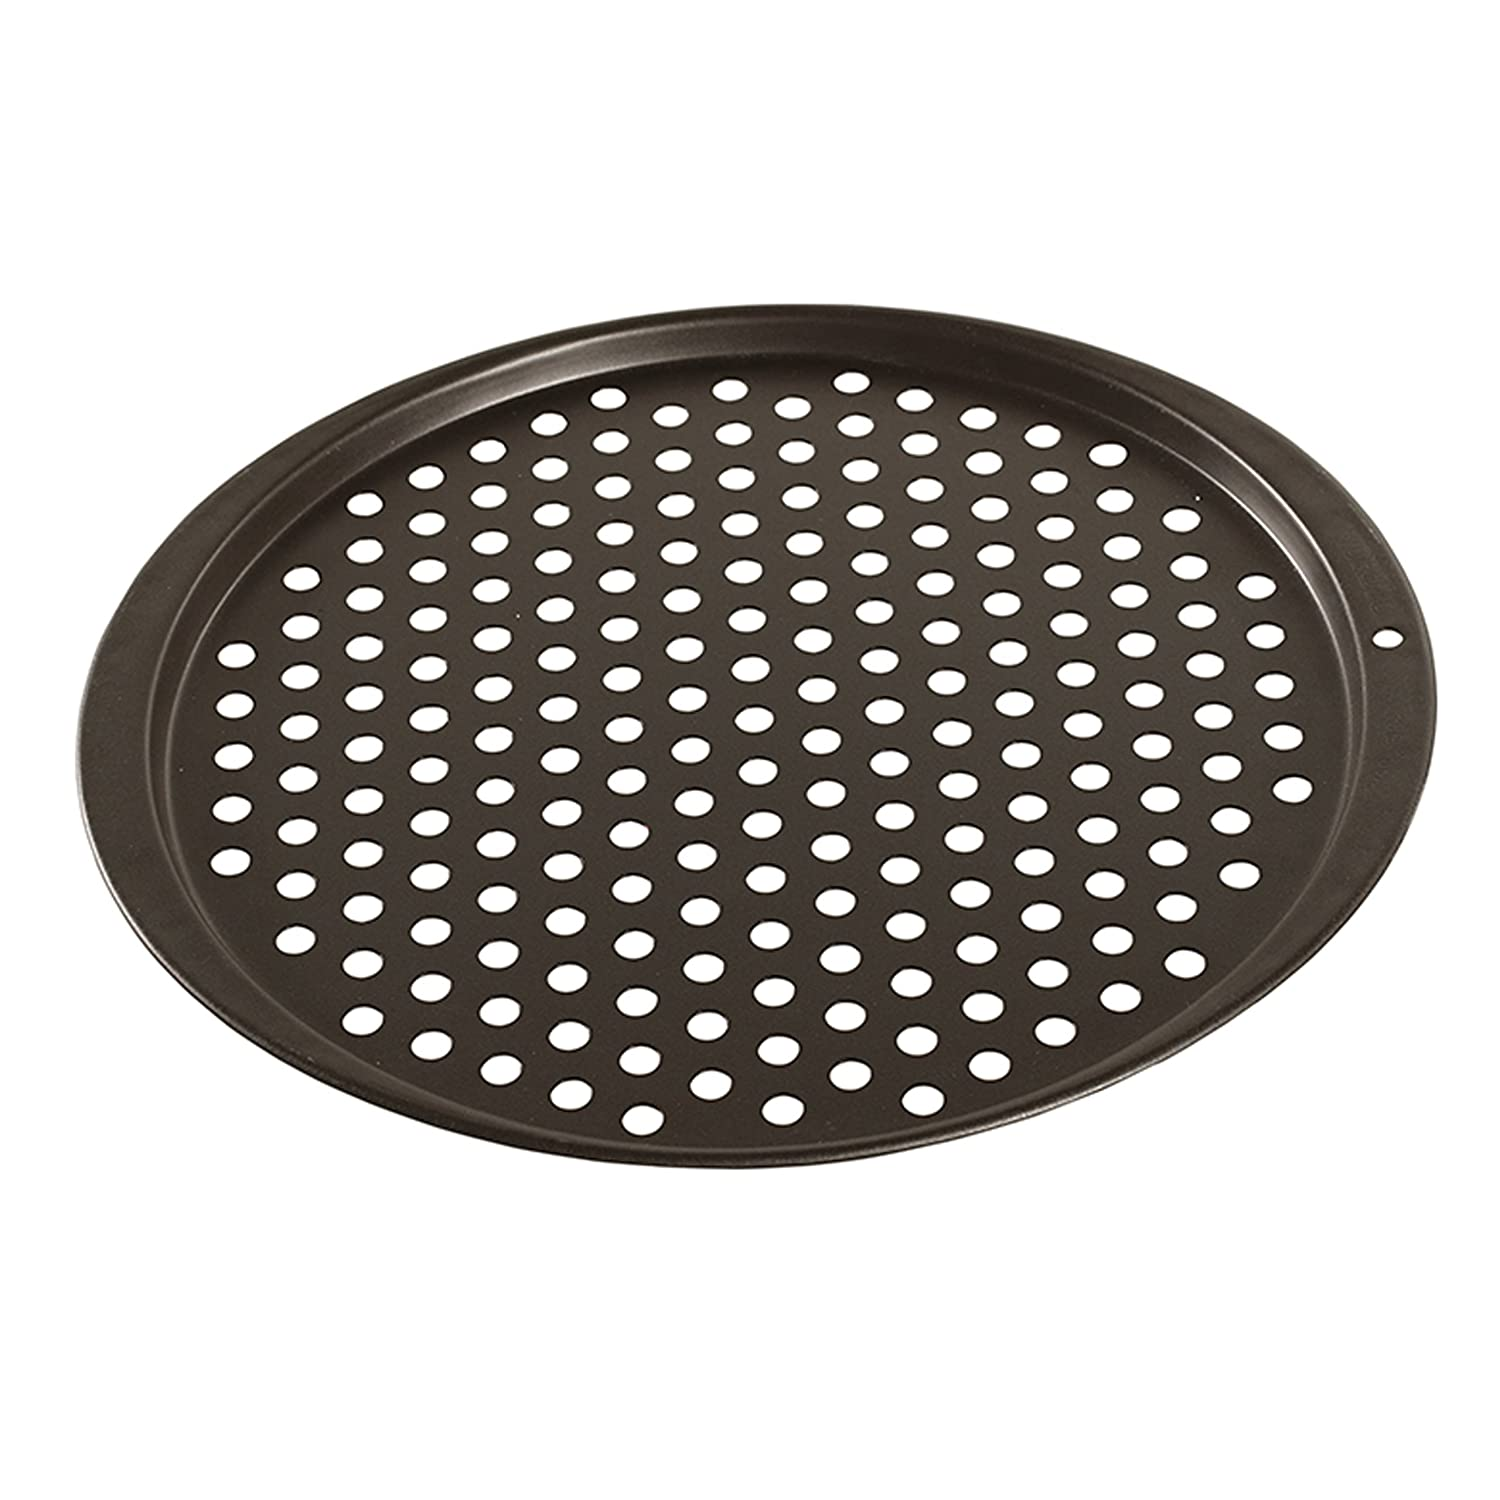 Nordic Ware 365 Indoor/Outdoor Large Pizza Pan, 12-Inch